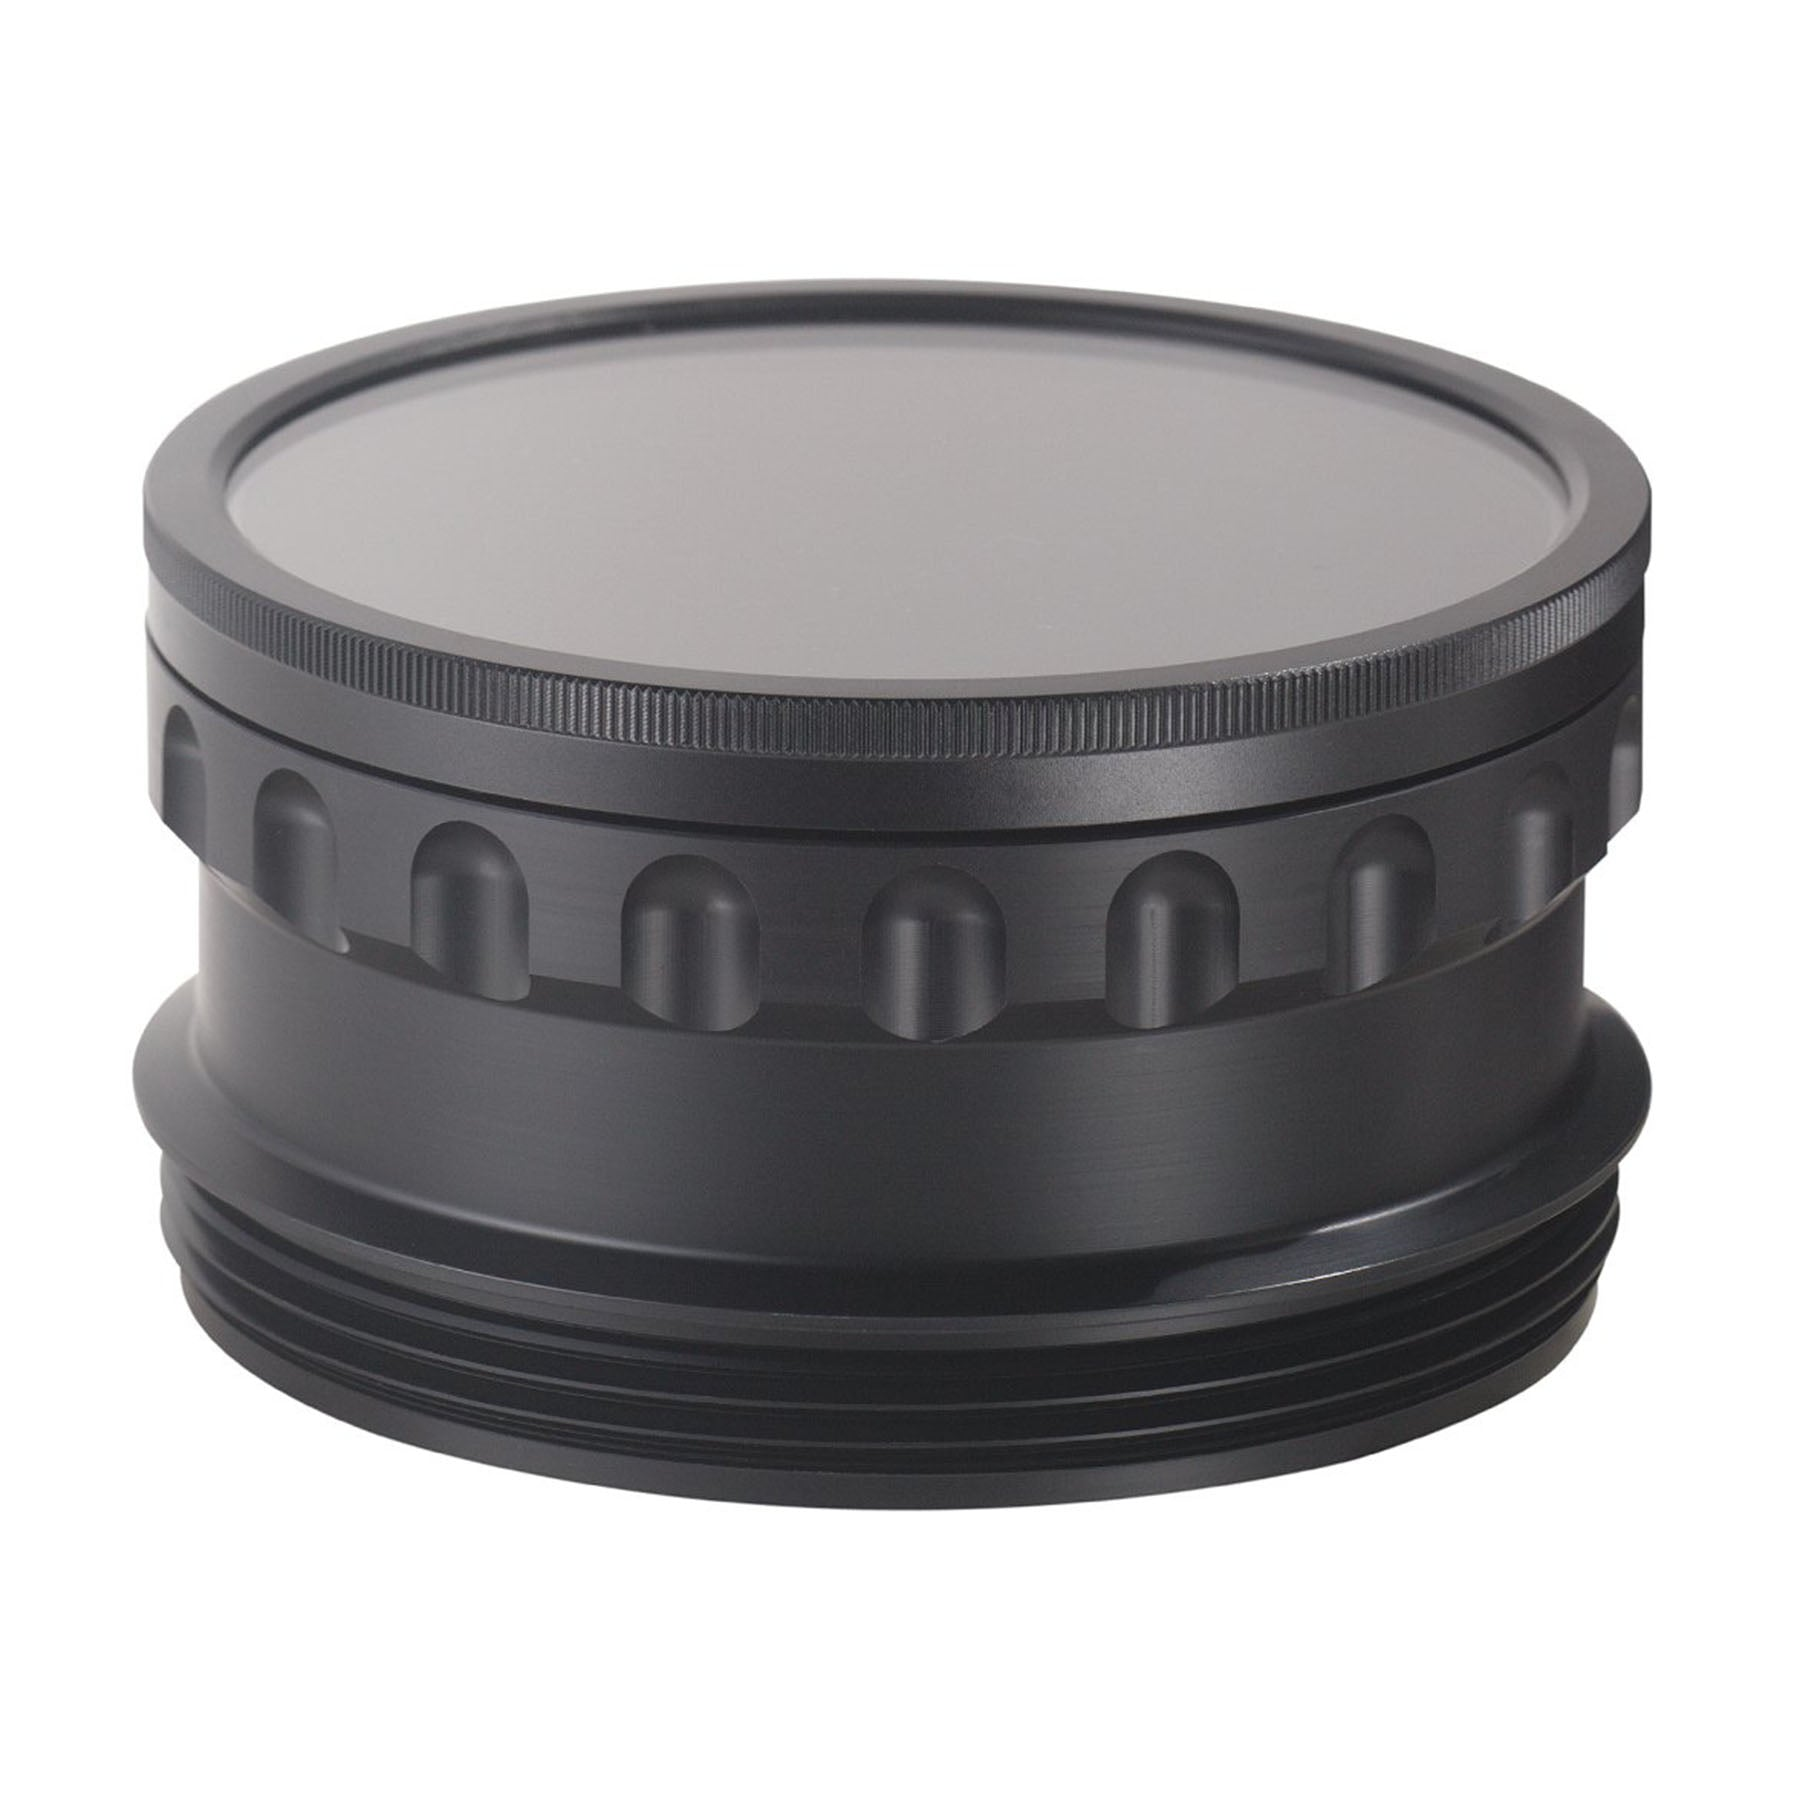 AquaTech P-80 Lens Port for Underwater Housing